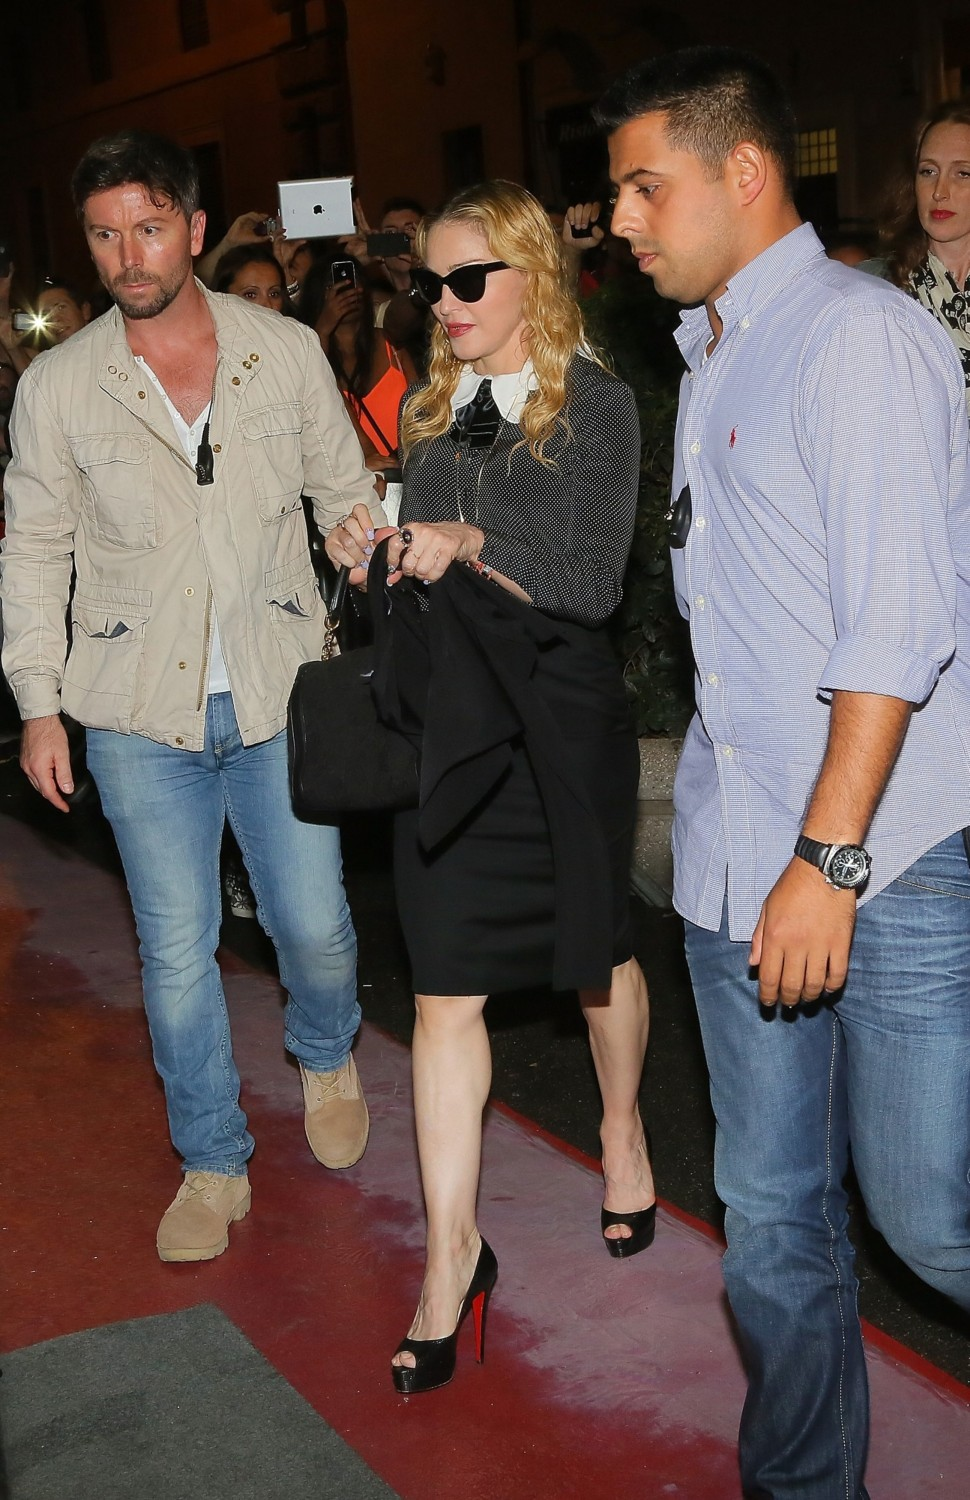 20130821-pictures-madonna-hard-candy-fitness-center-rome-04